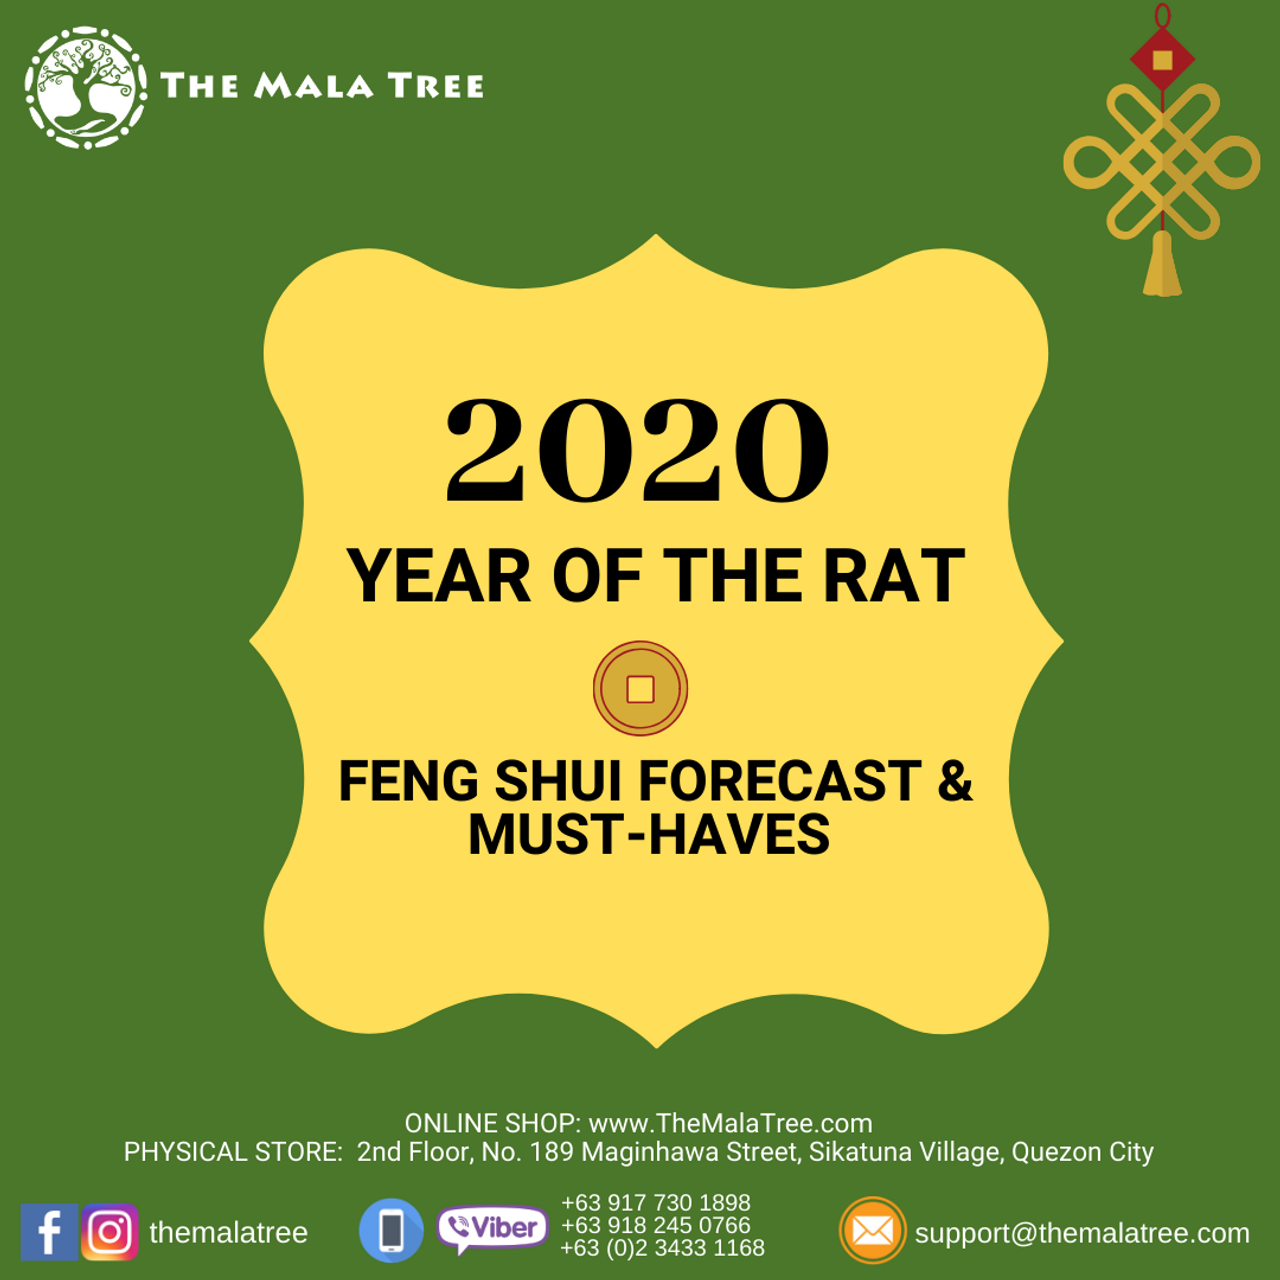 2020 FENG SHUI FORECAST & MUST-HAVES